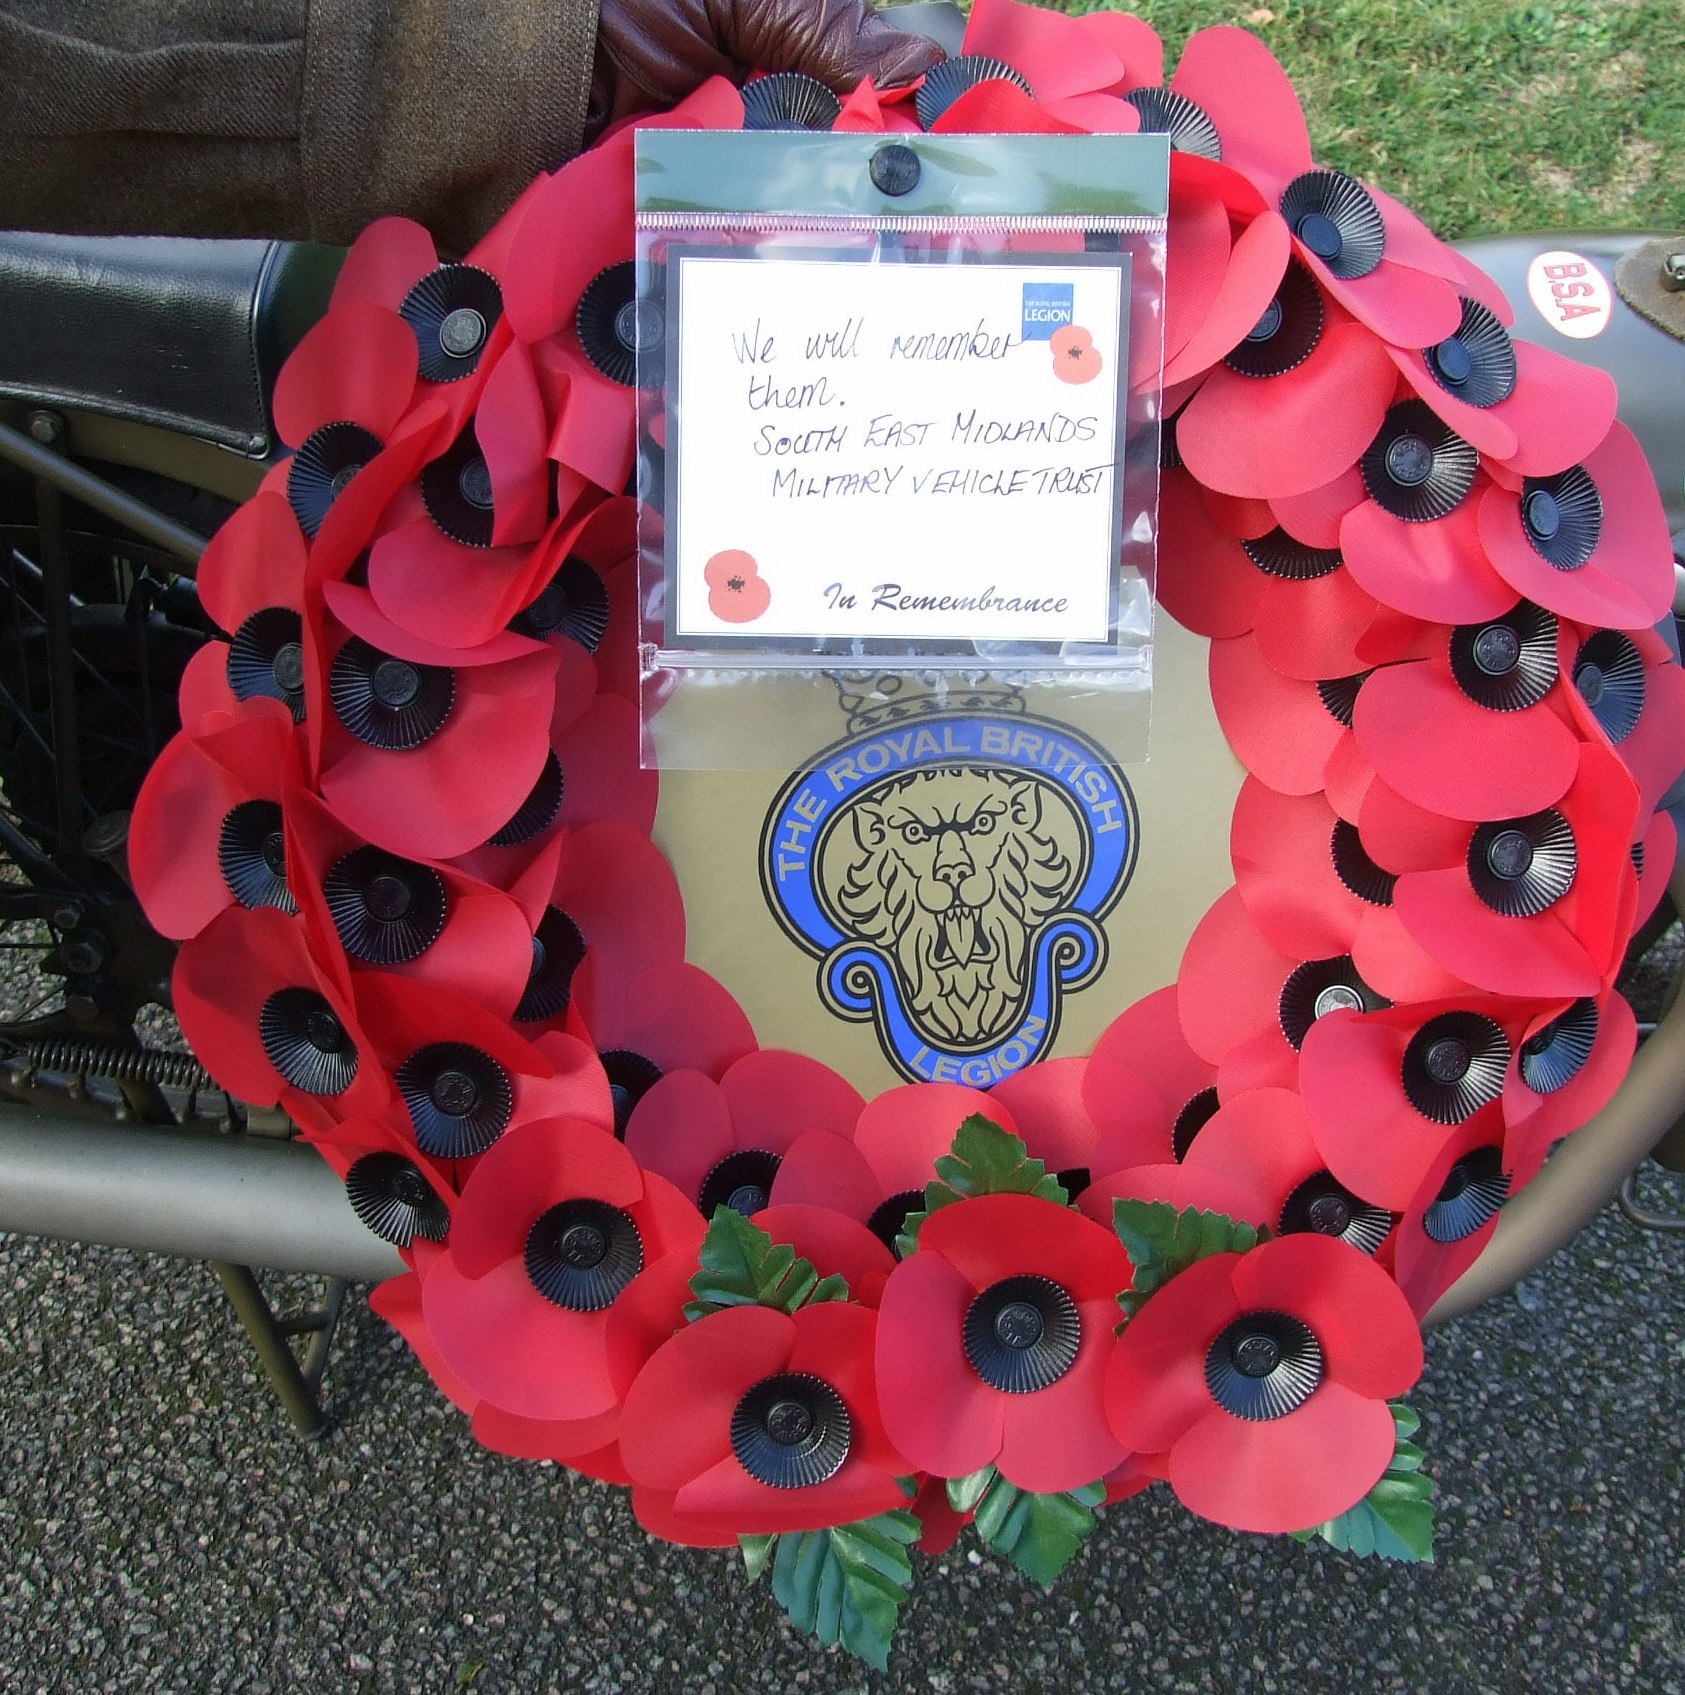 Wreath from the SE Midlands Area, MVT